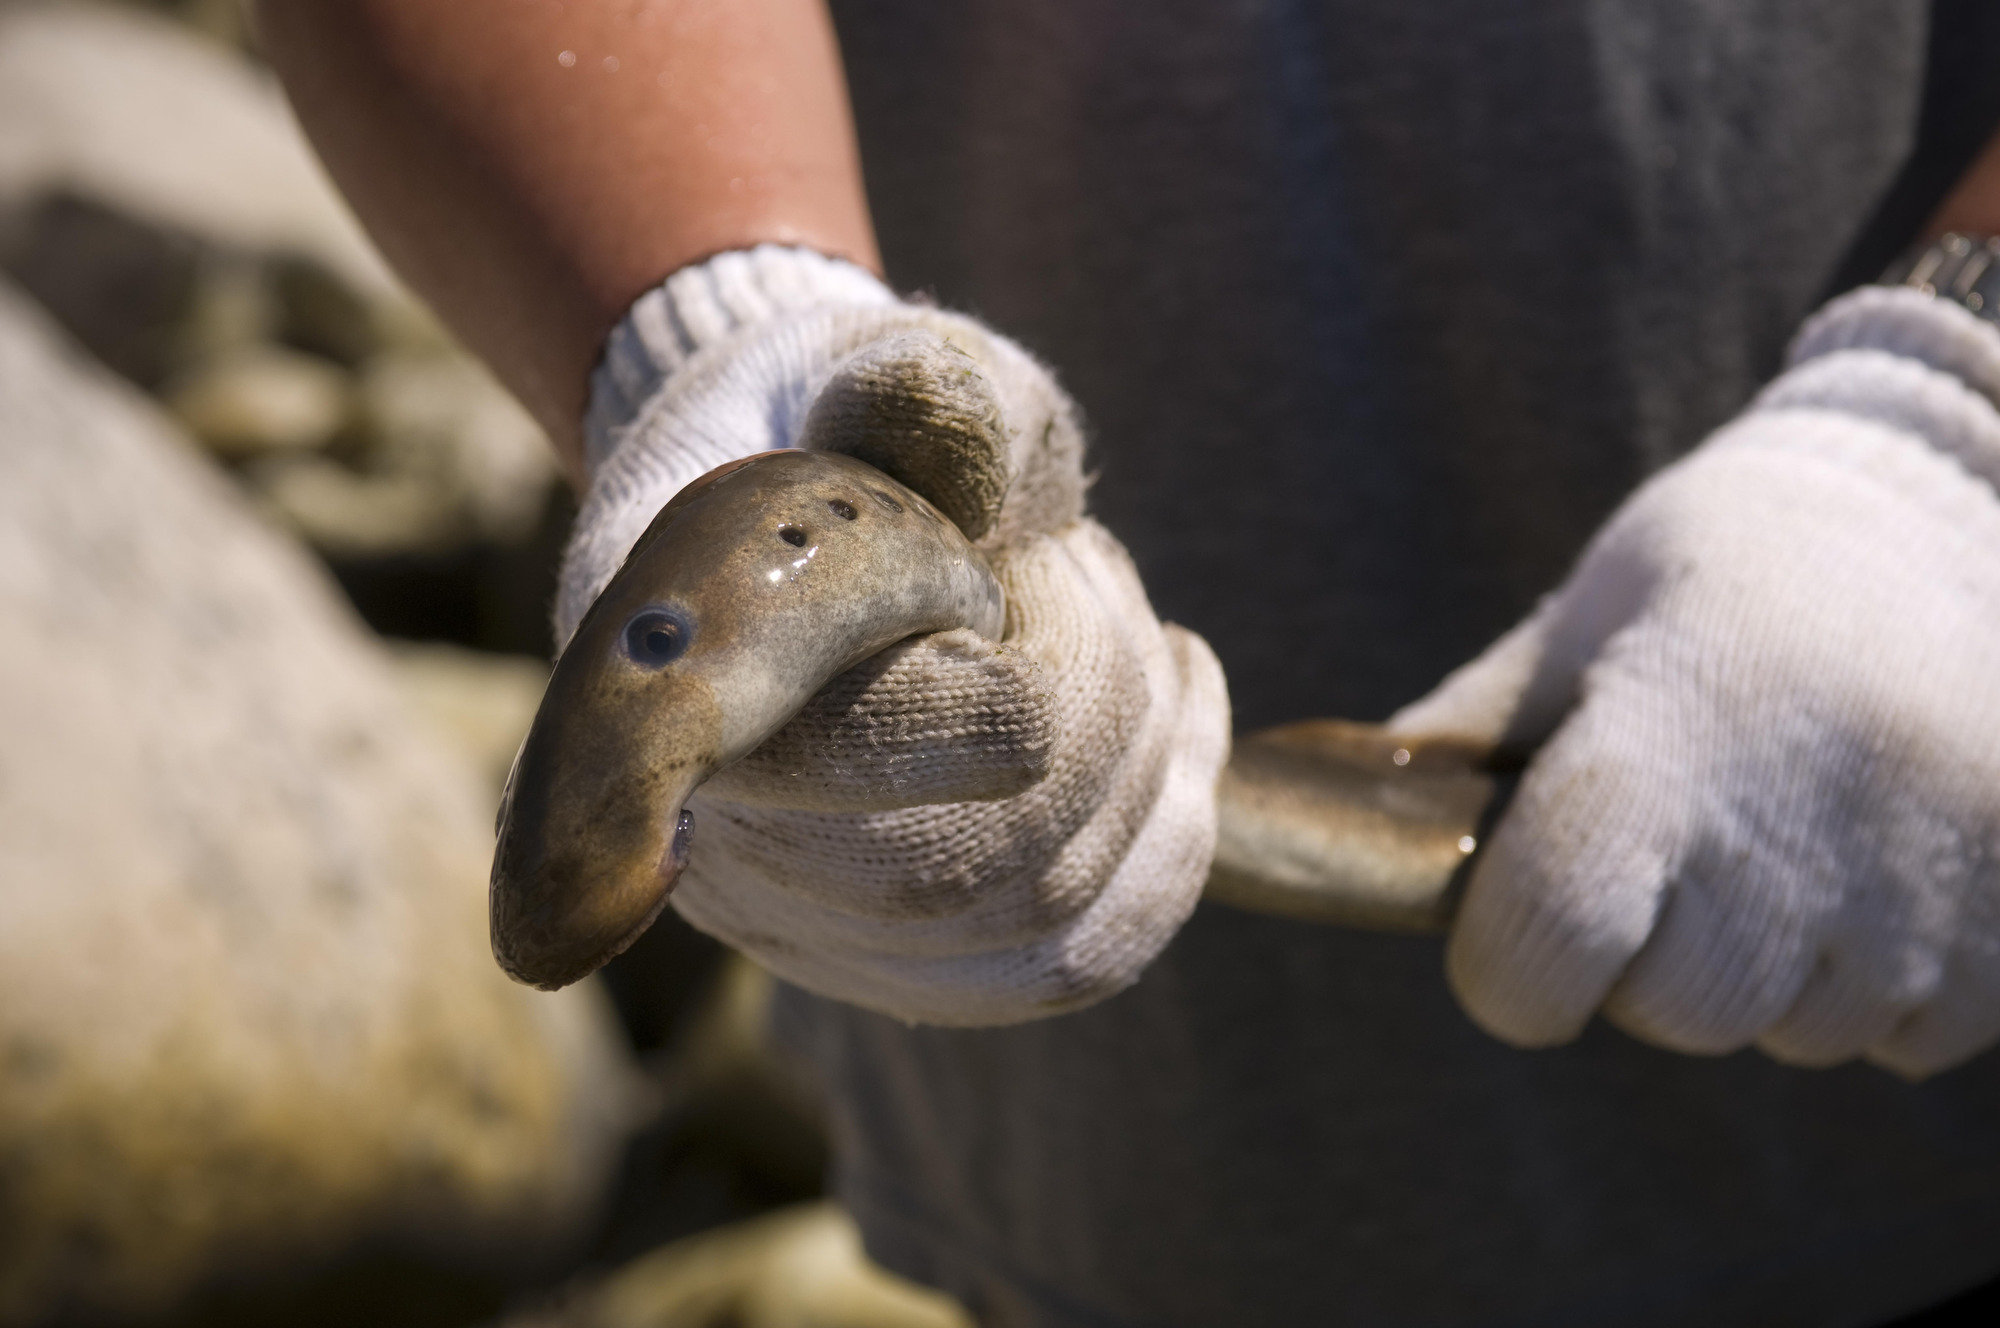 Lampreys Attack Humans List Of Synonyms And Antonyms Of The Word